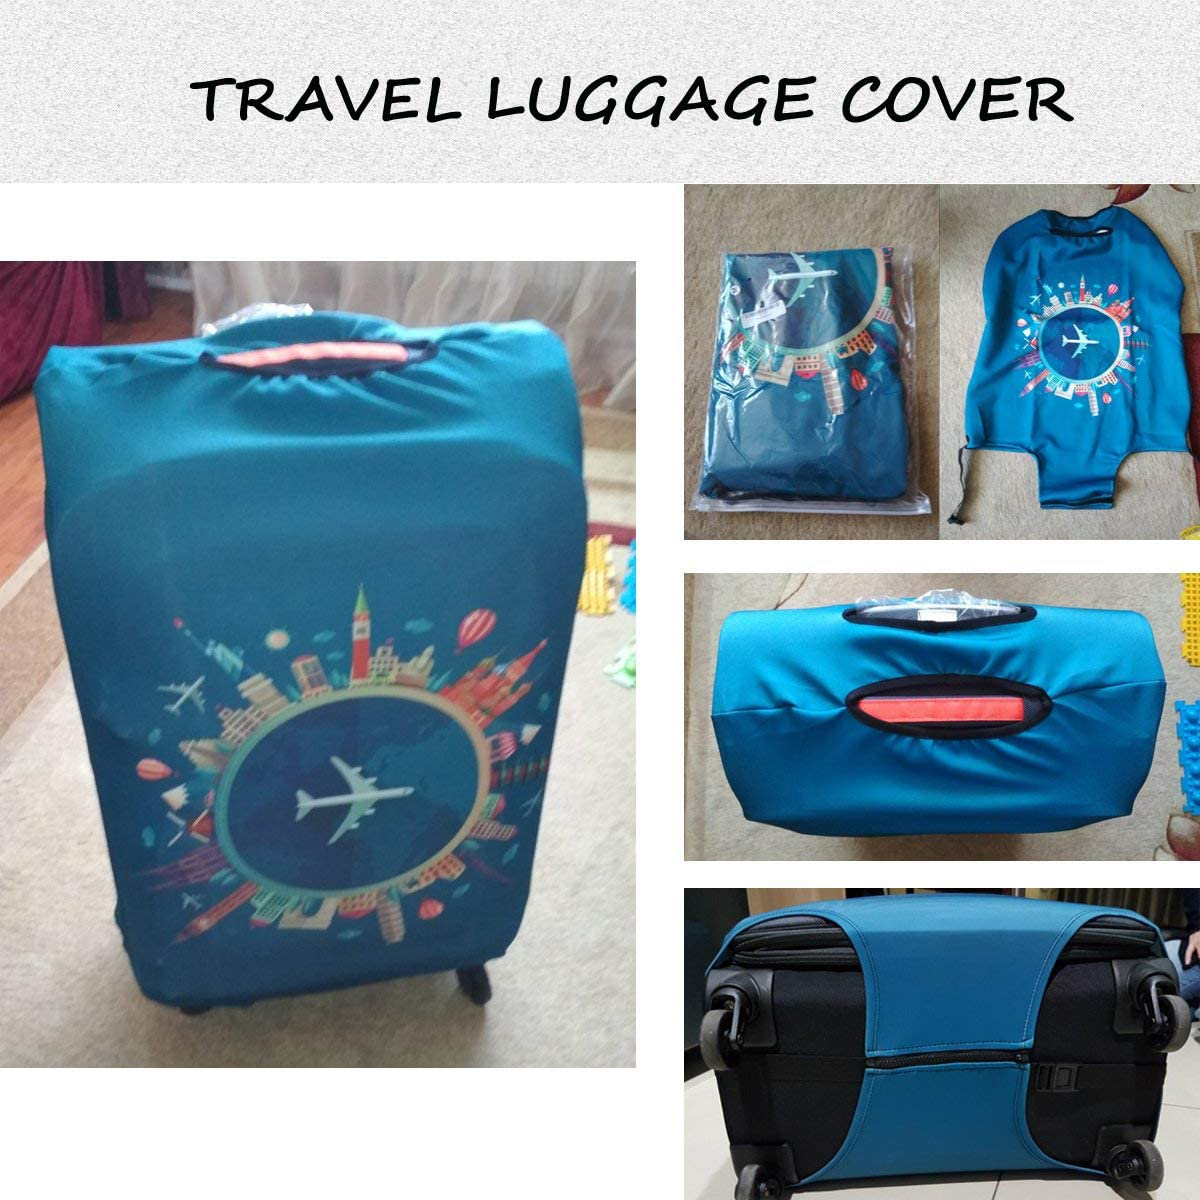 18-21 inch luggage MQiong Travel Luggage Cover Fit for 18-32 Inch Luggage Plane-travel, S